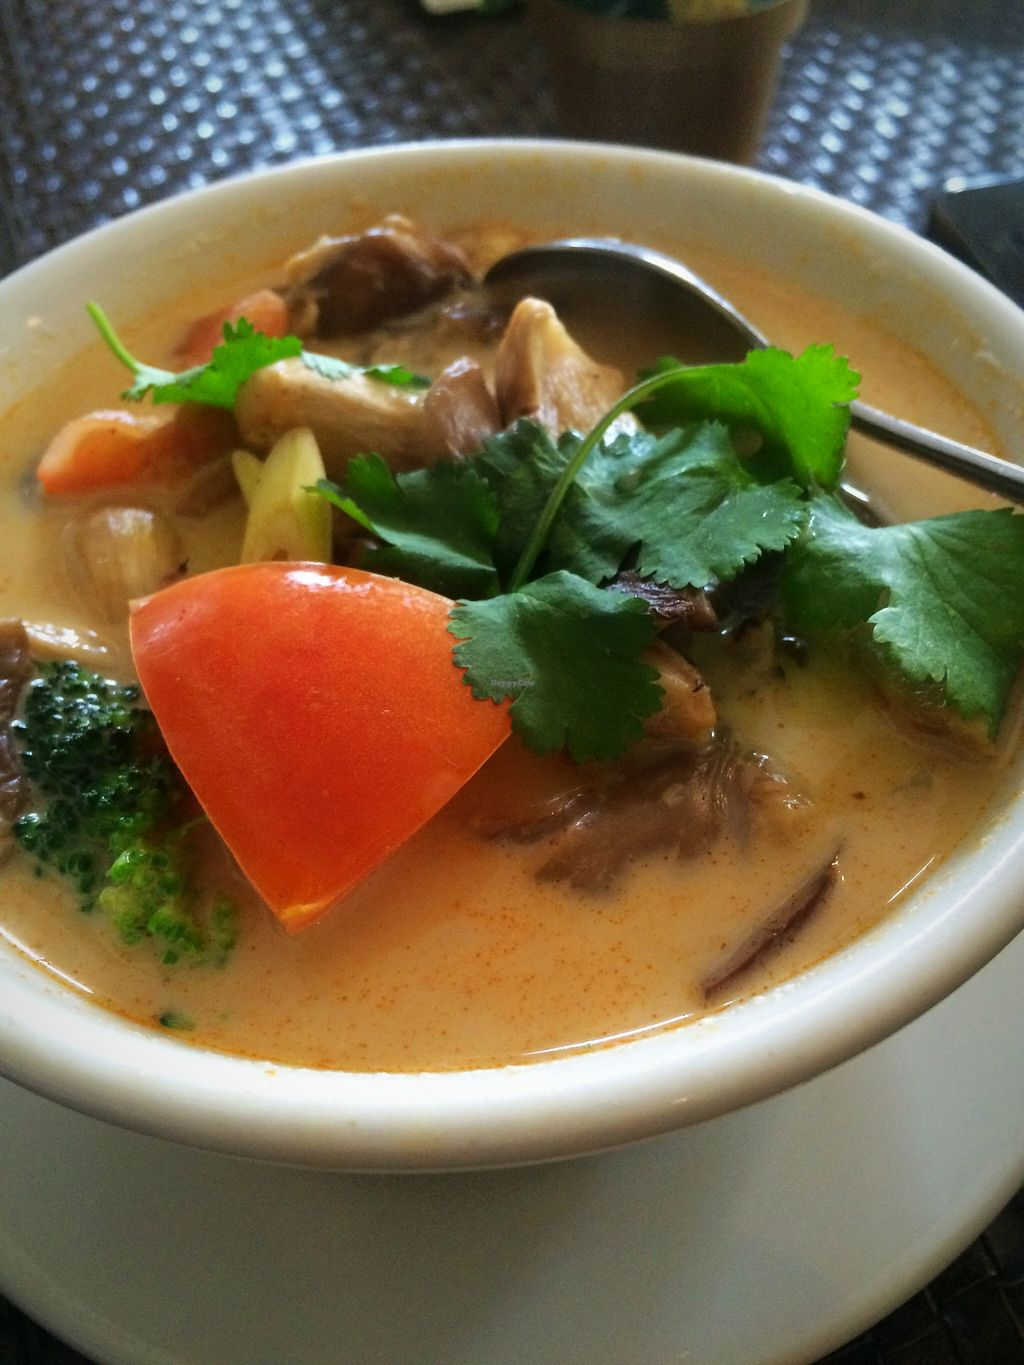 """Photo of Veggie House  by <a href=""""/members/profile/serrarose"""">serrarose</a> <br/>Delicious Tom Kha Soup <br/> December 27, 2015  - <a href='/contact/abuse/image/41594/130032'>Report</a>"""